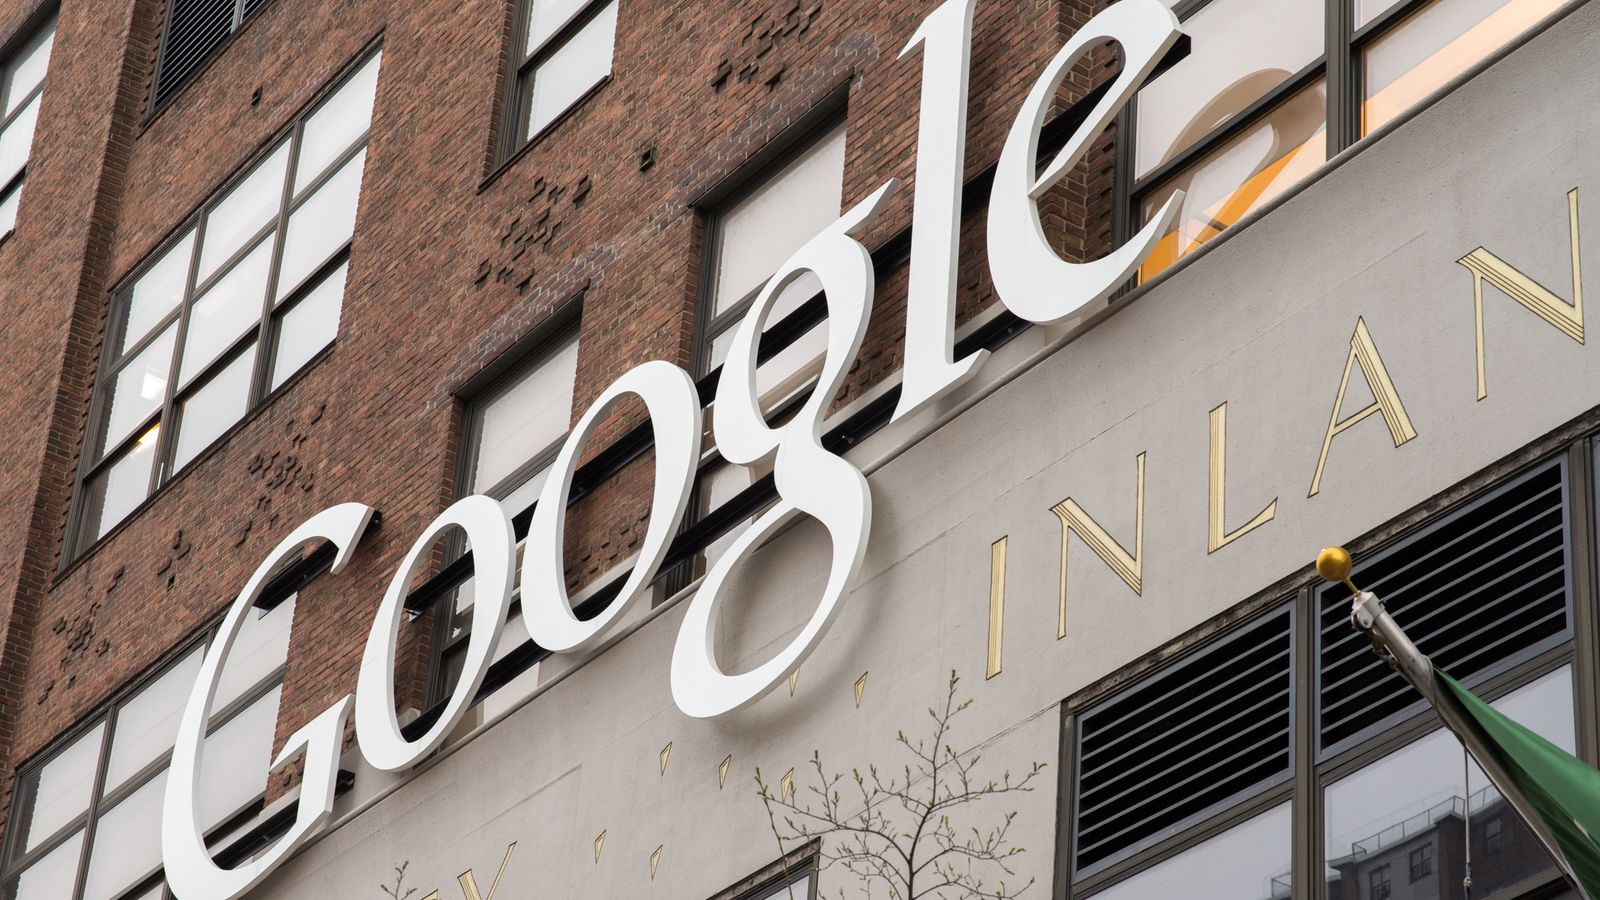 Google is starting to remove revenge porn from search